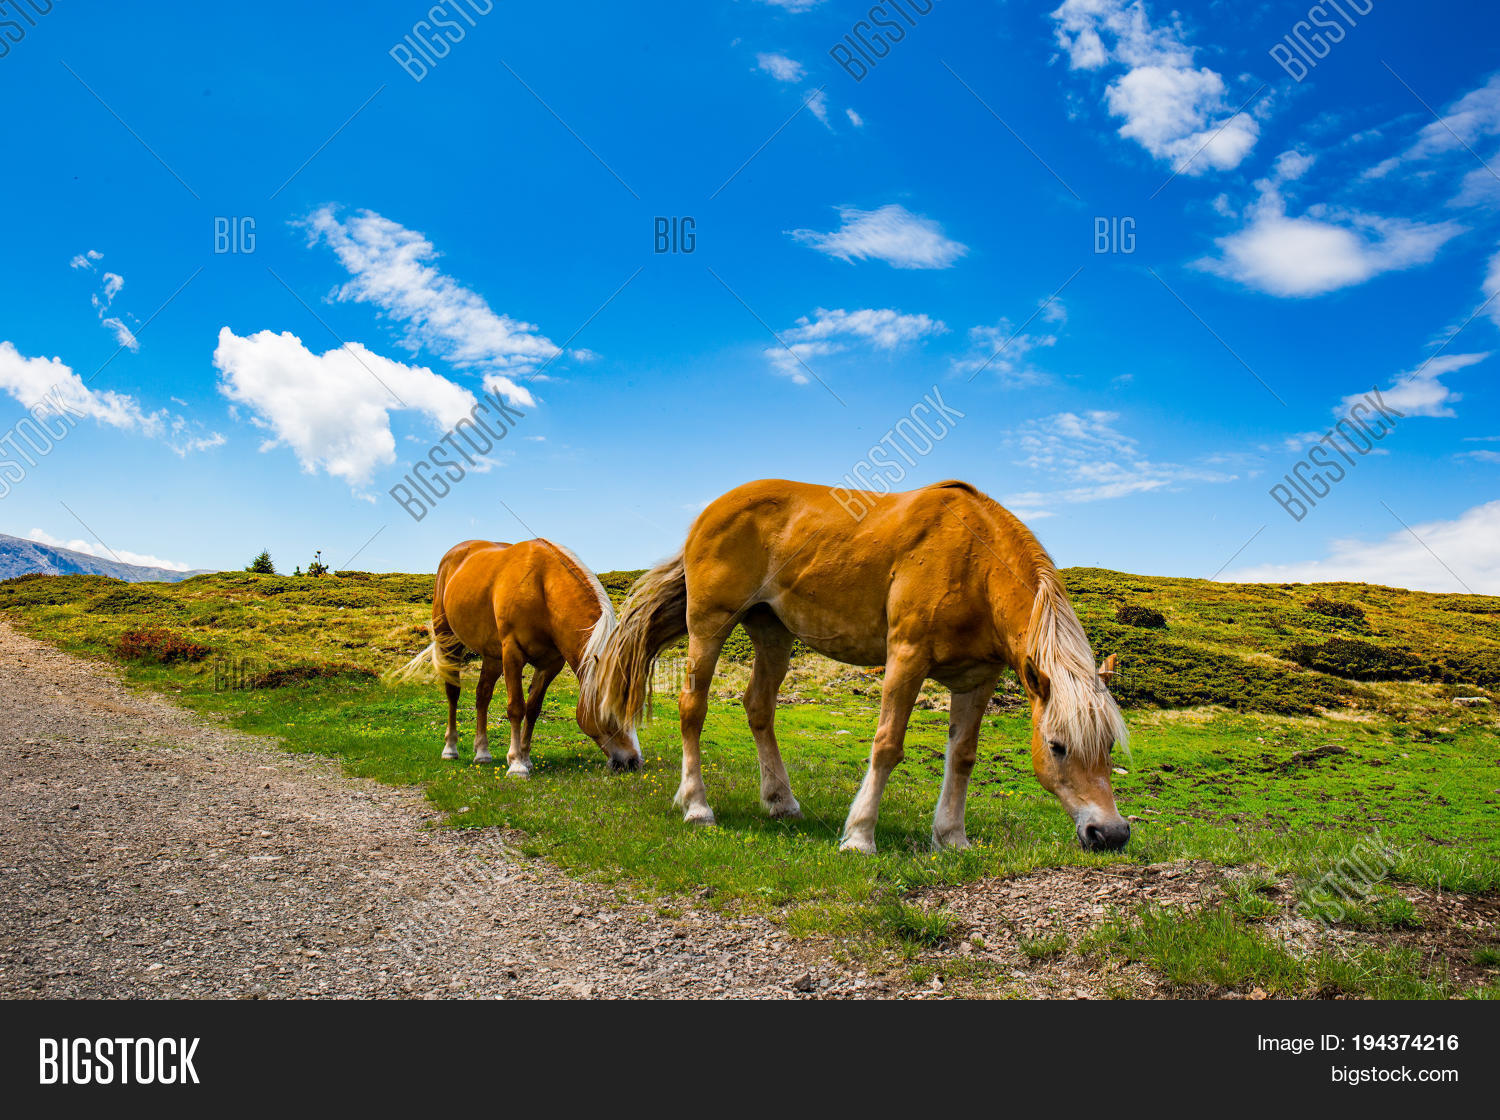 some beautiful wild horses with a mountain scenery in the background